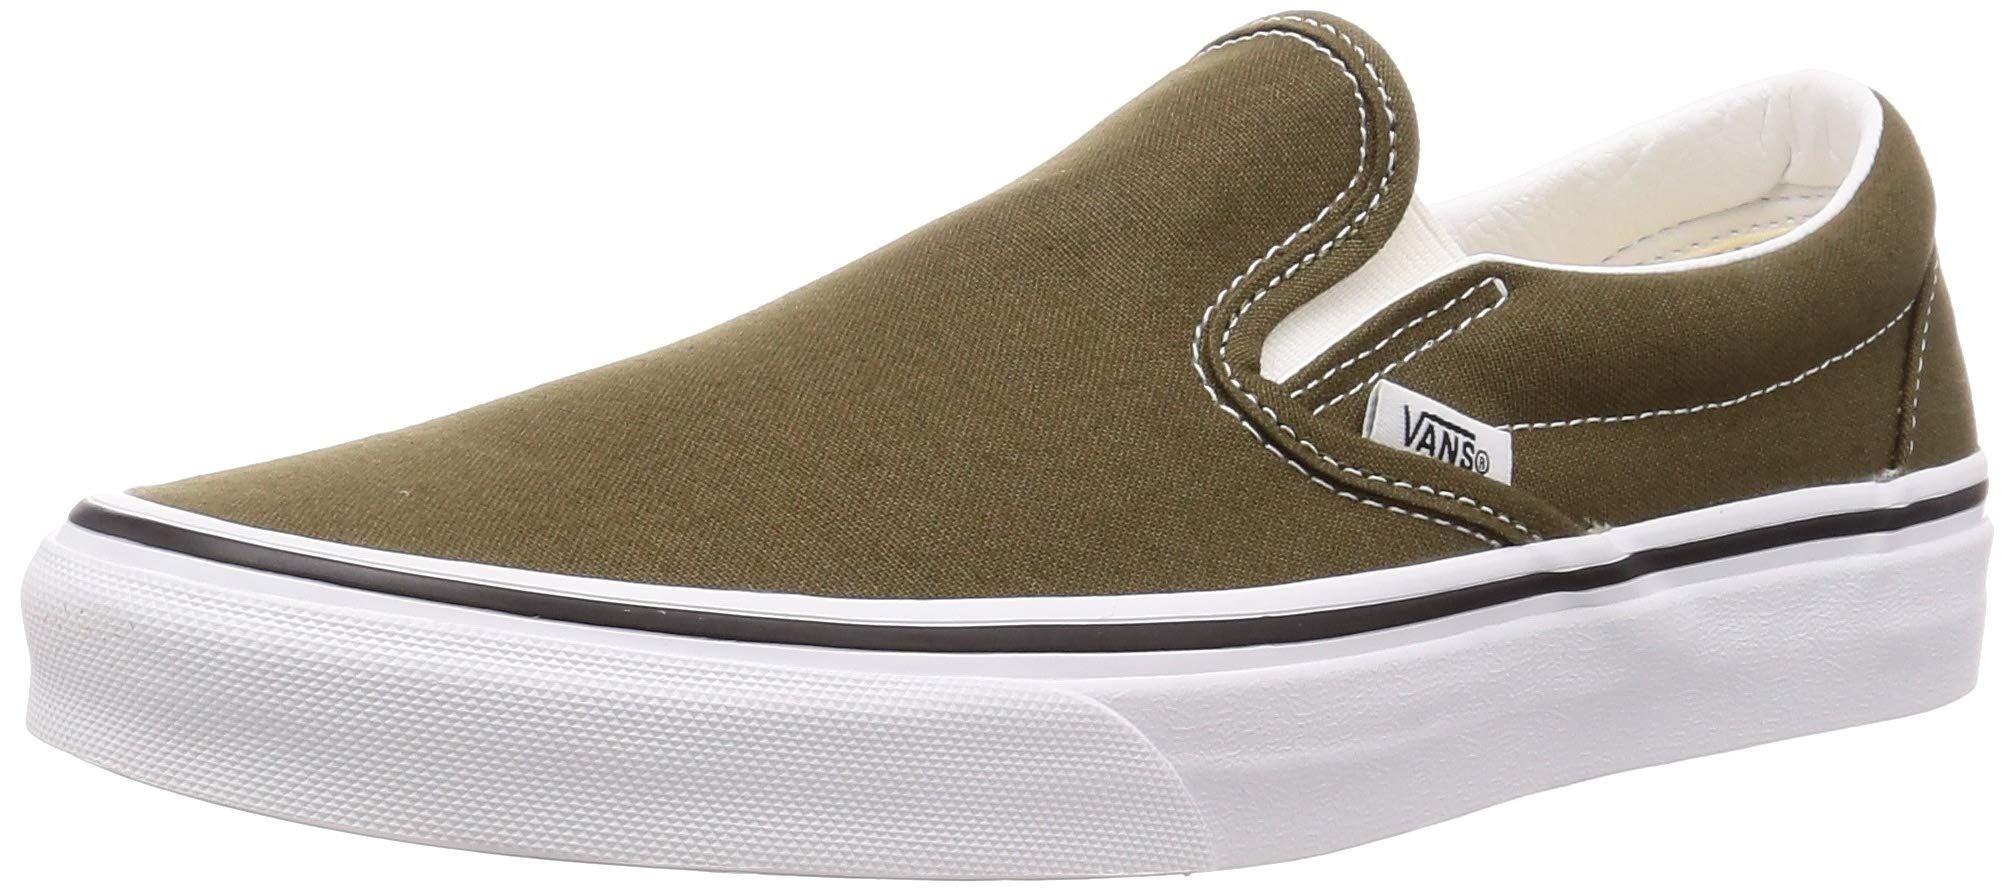 Vans Unisex Classic Slip-On Skate Shoe (10.5 Women/9 Men, Beech/True White) by Vans